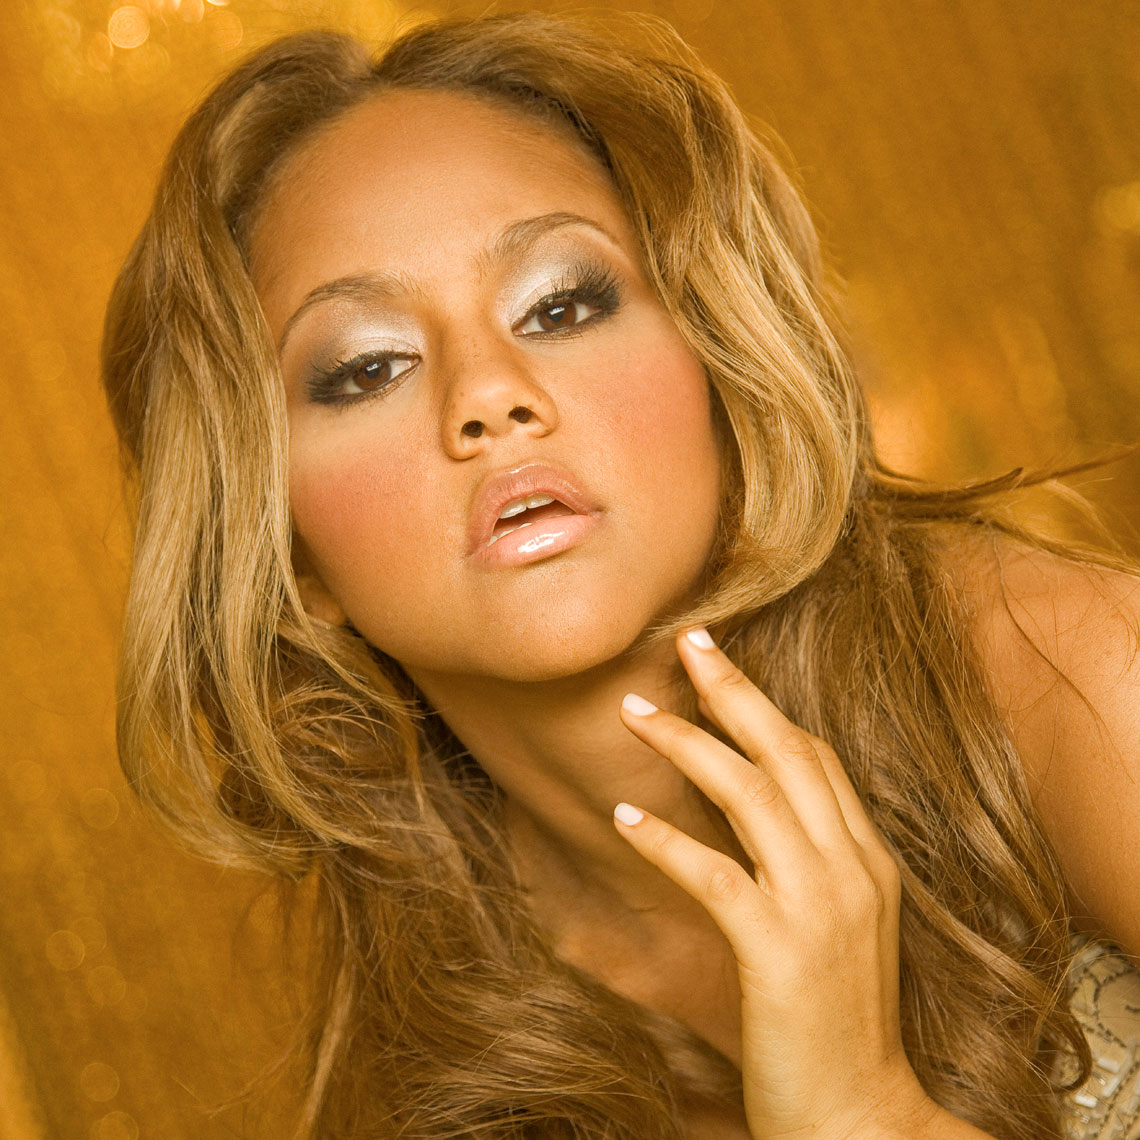 kat deluna,lifestyle photographer,william heuberger fashion photographer,bill heuberger,NYC,portrait,20080521_KD__1127_MASTER